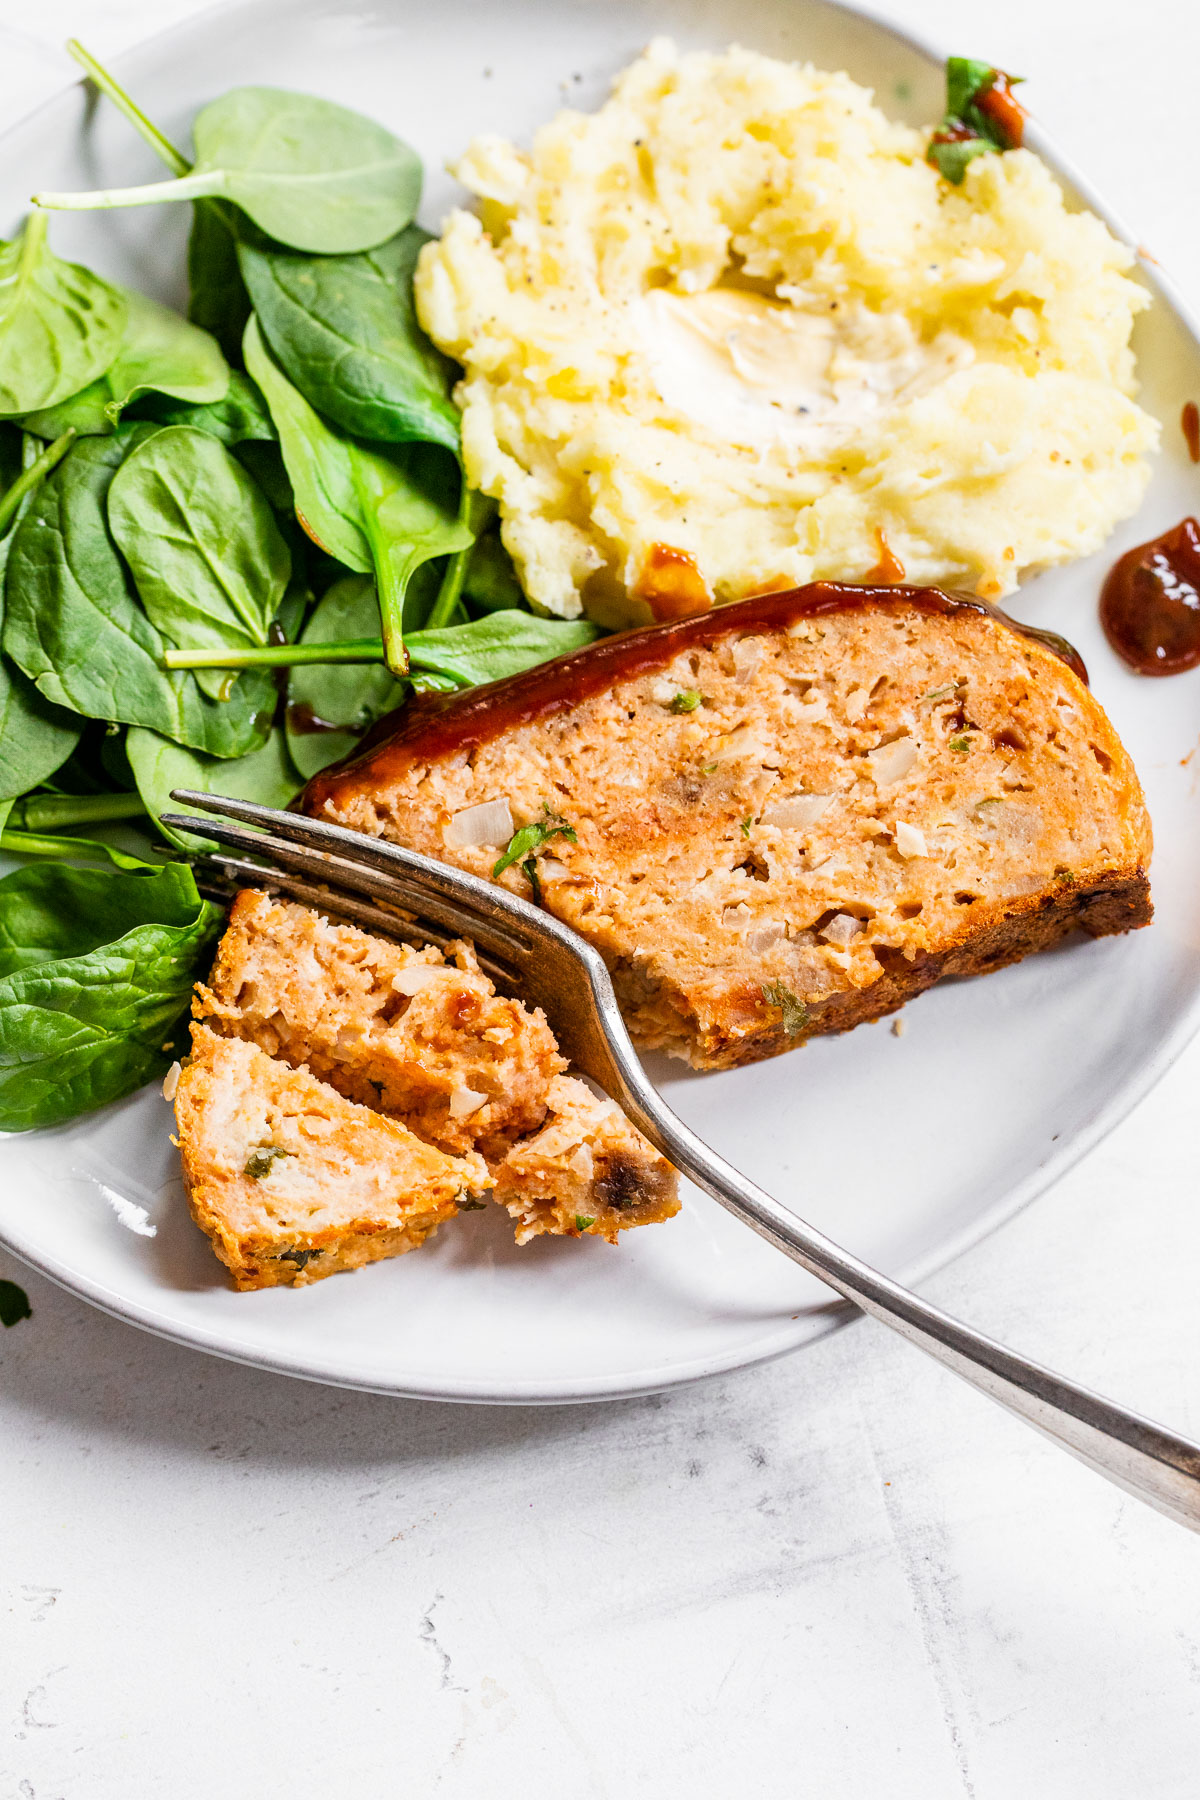 meatloaf, spinach and mashed potatoes on a plate